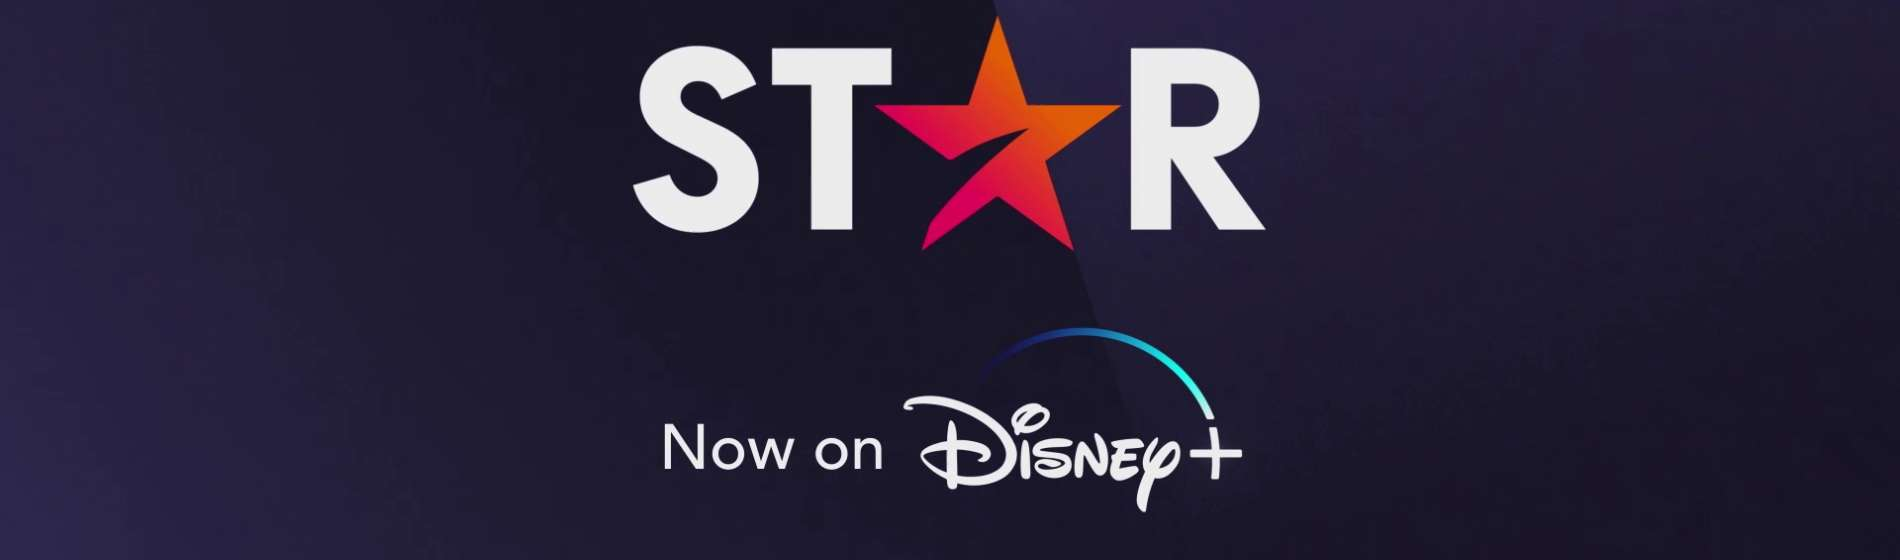 disney+star-feature-image